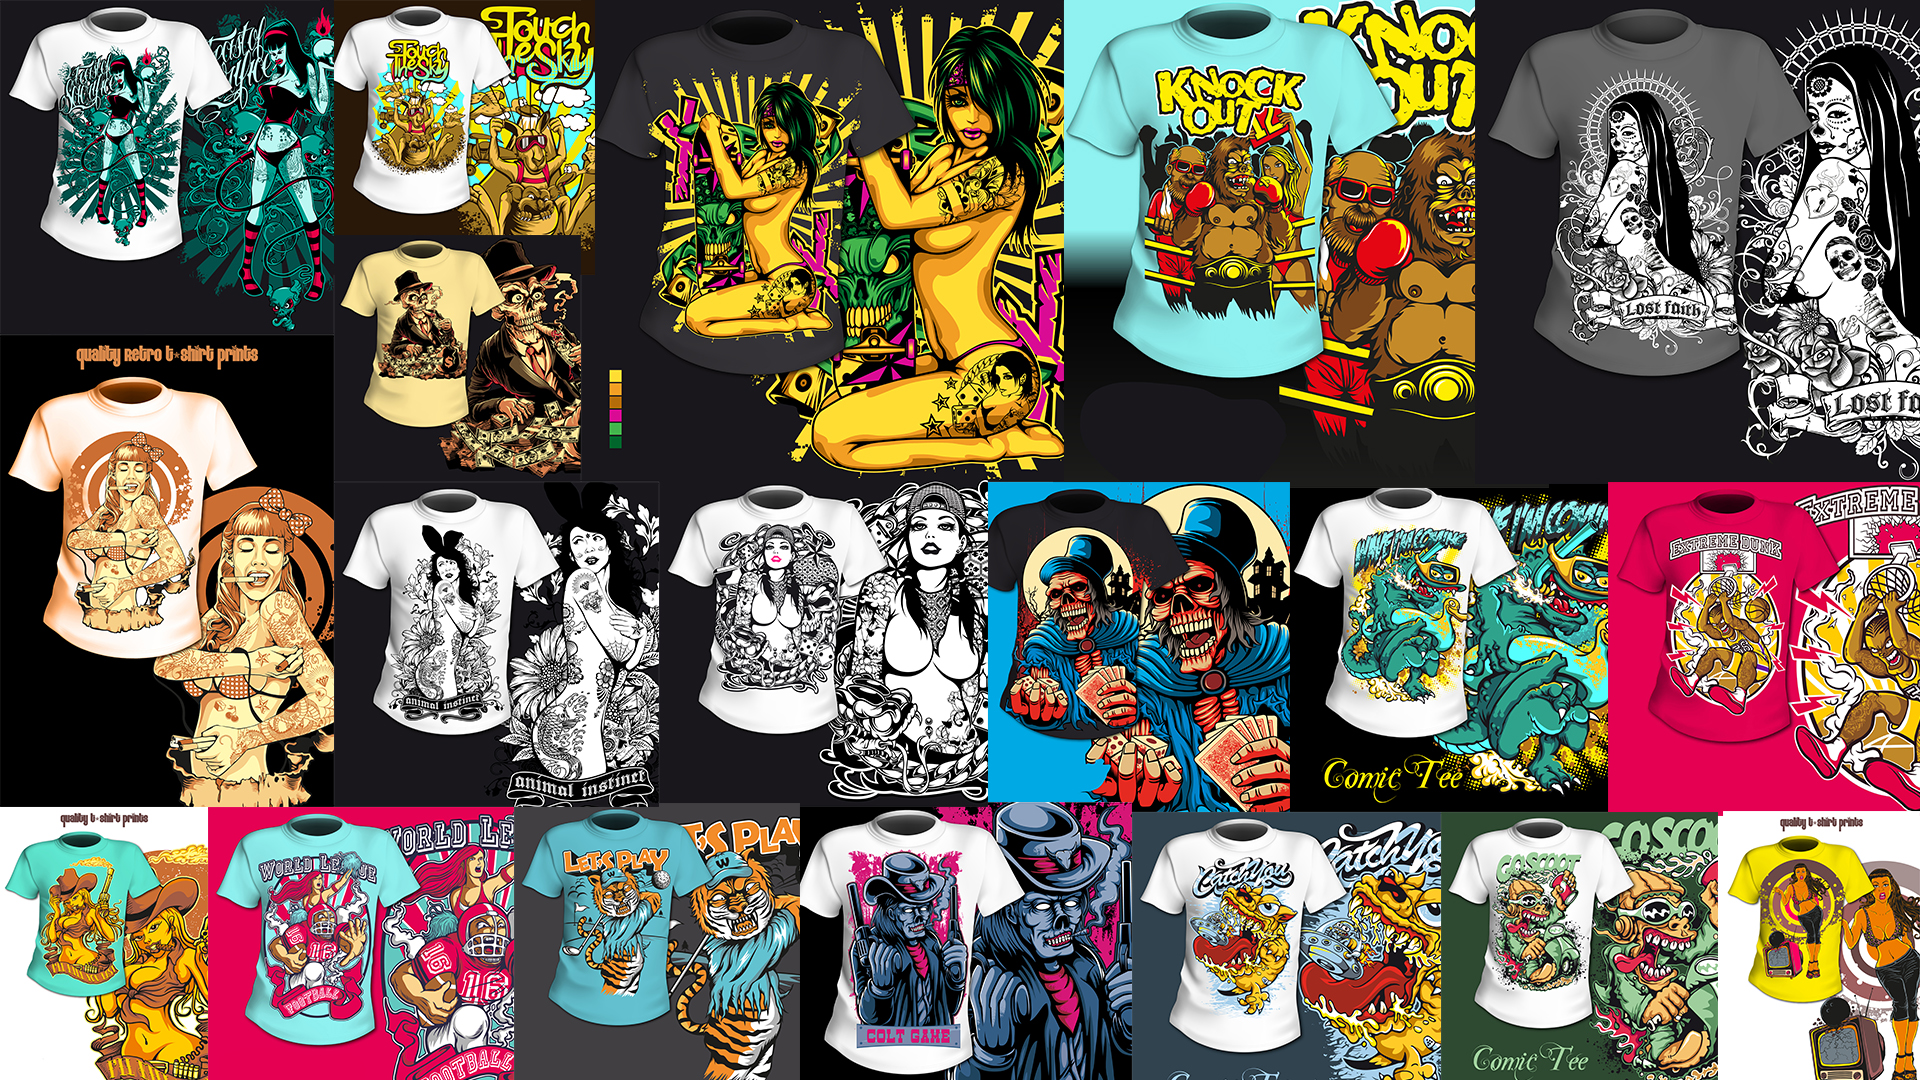 I will send you 20 tshirt designs ready for selling or printing